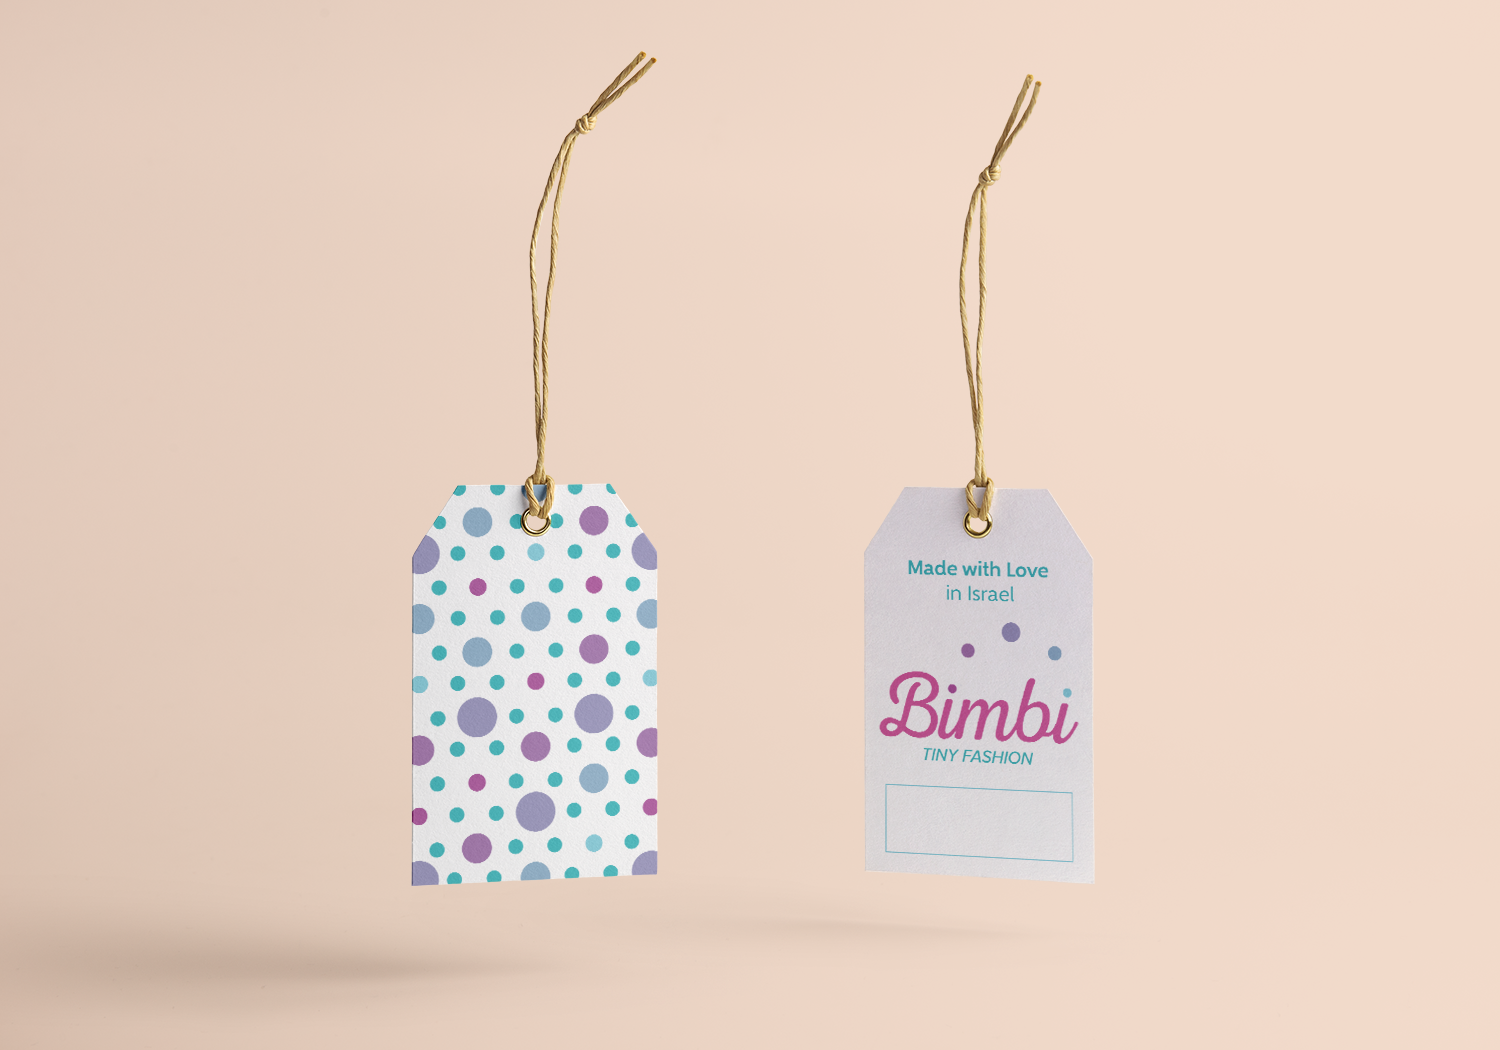 Bimbi clothes tags